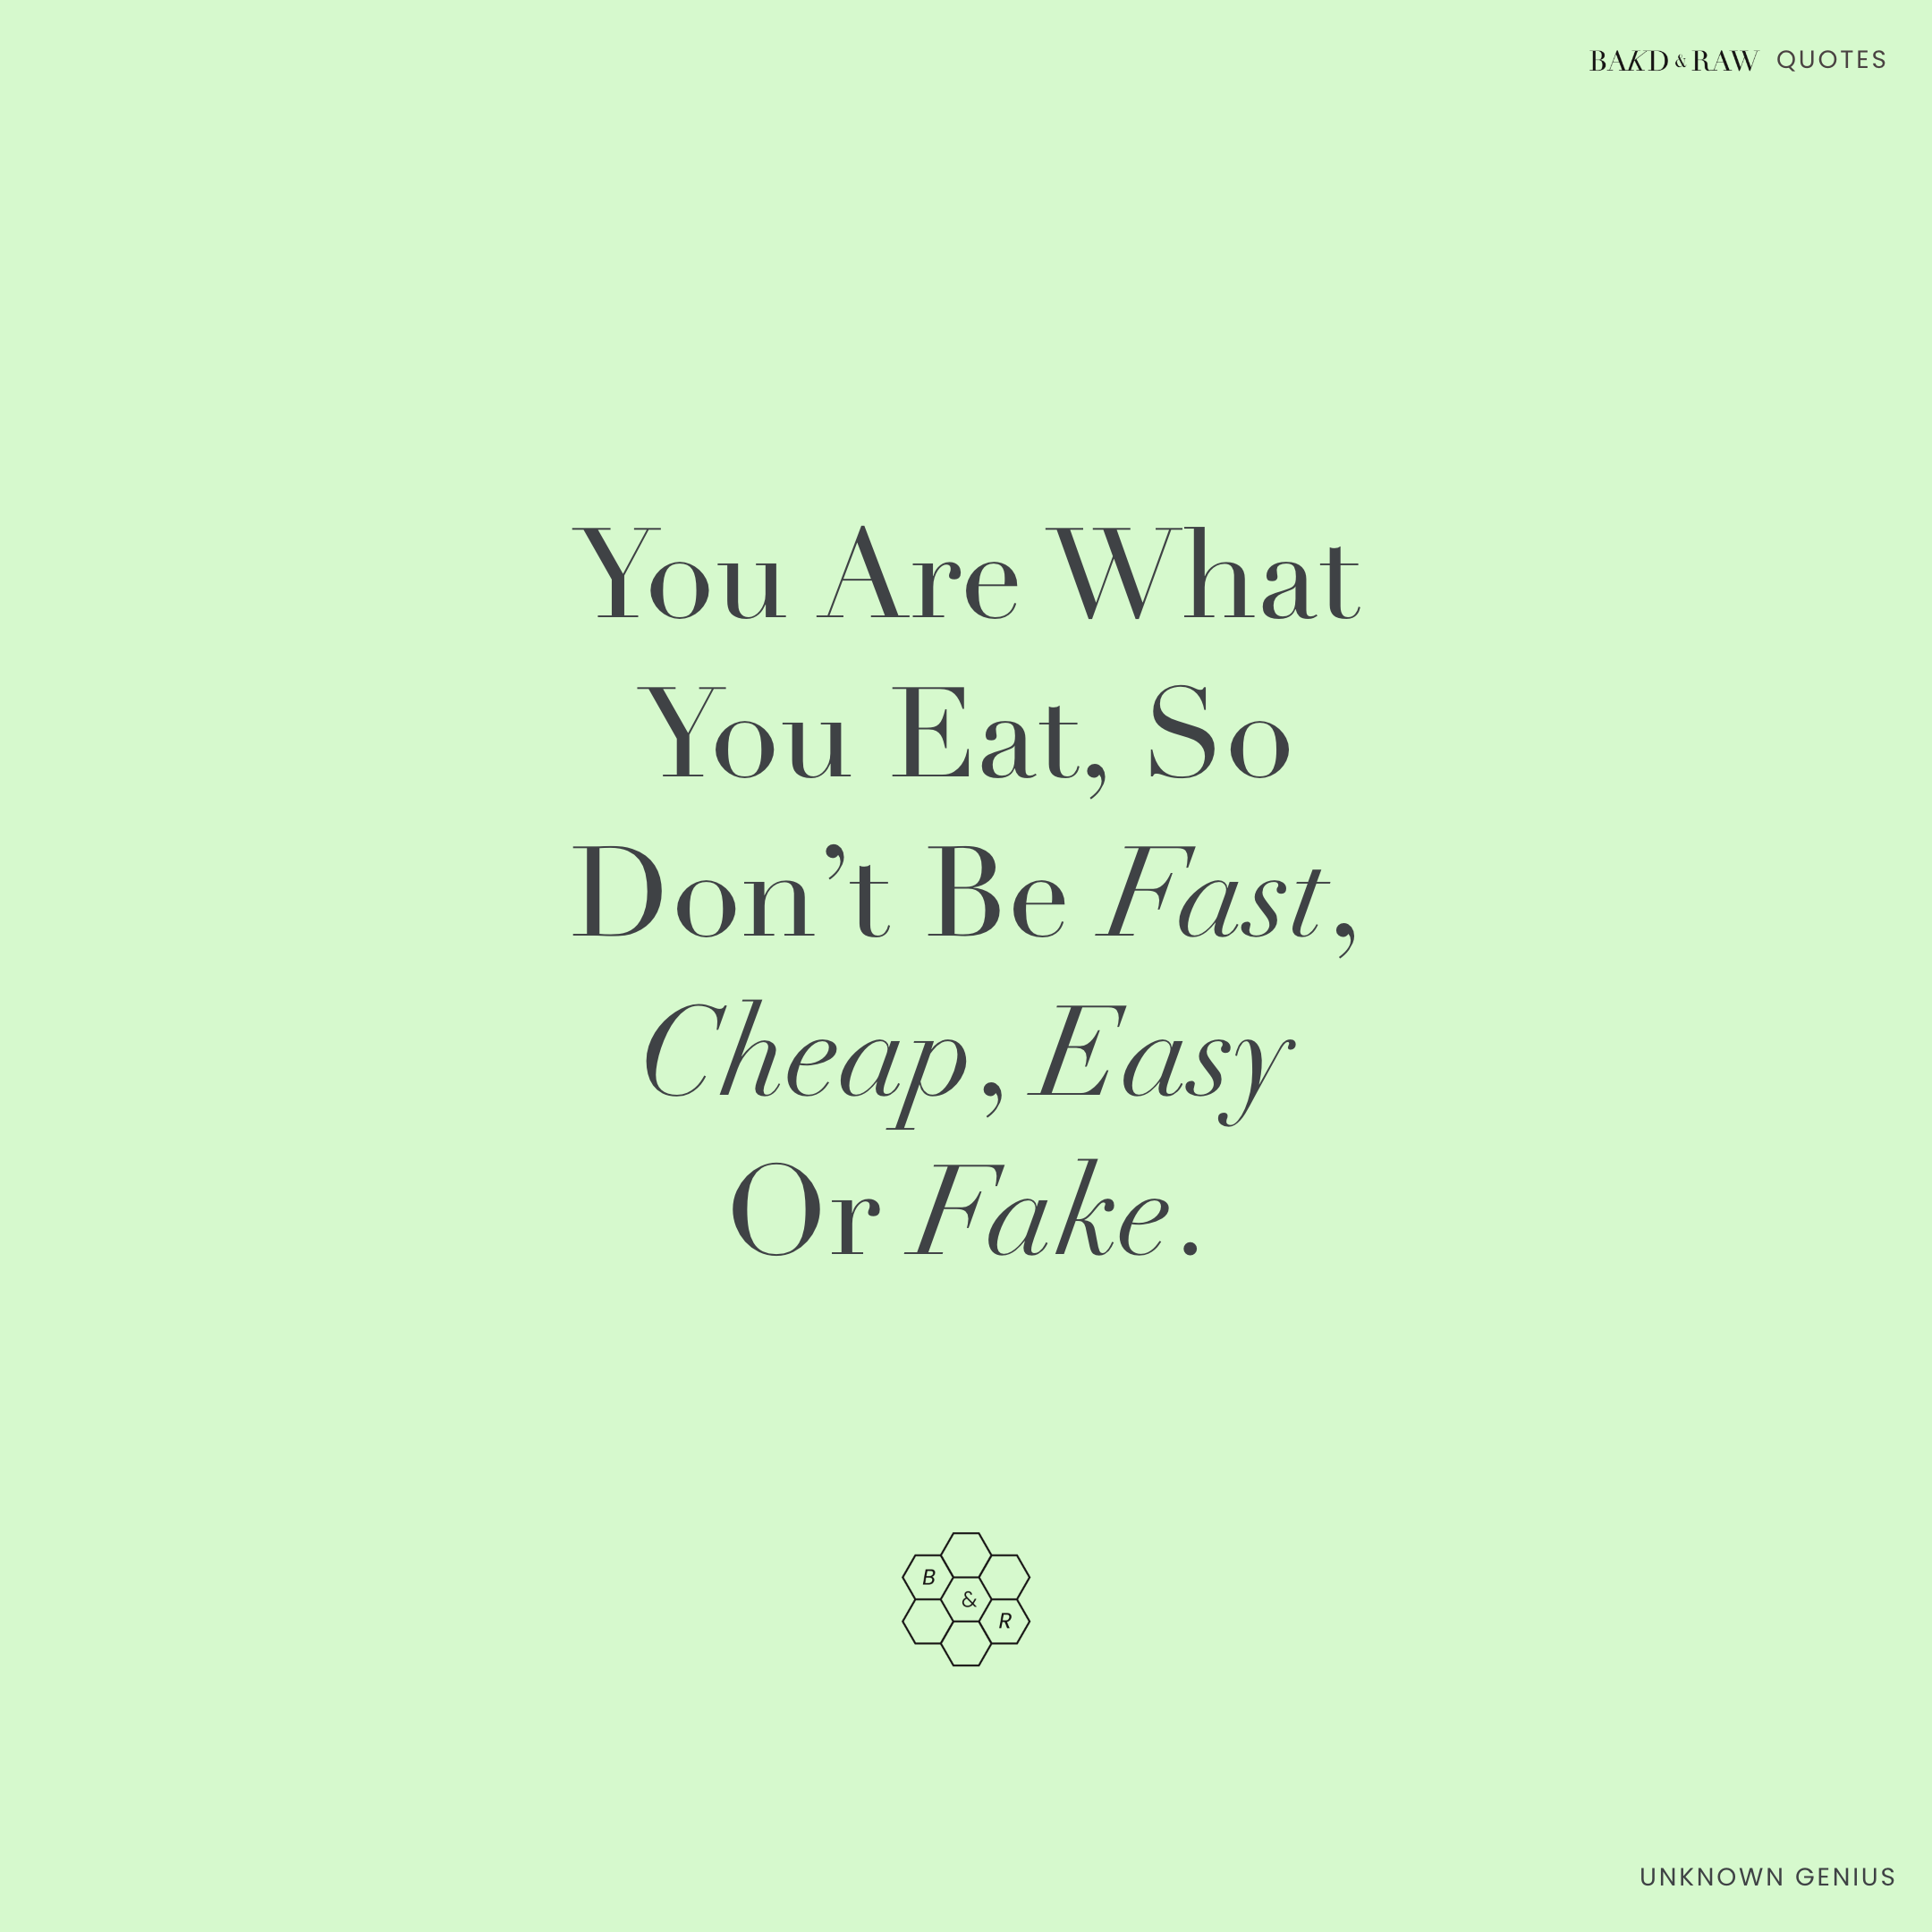 You are what you eat, Bakd&Raw Food Quotes by Karolin Baitinger